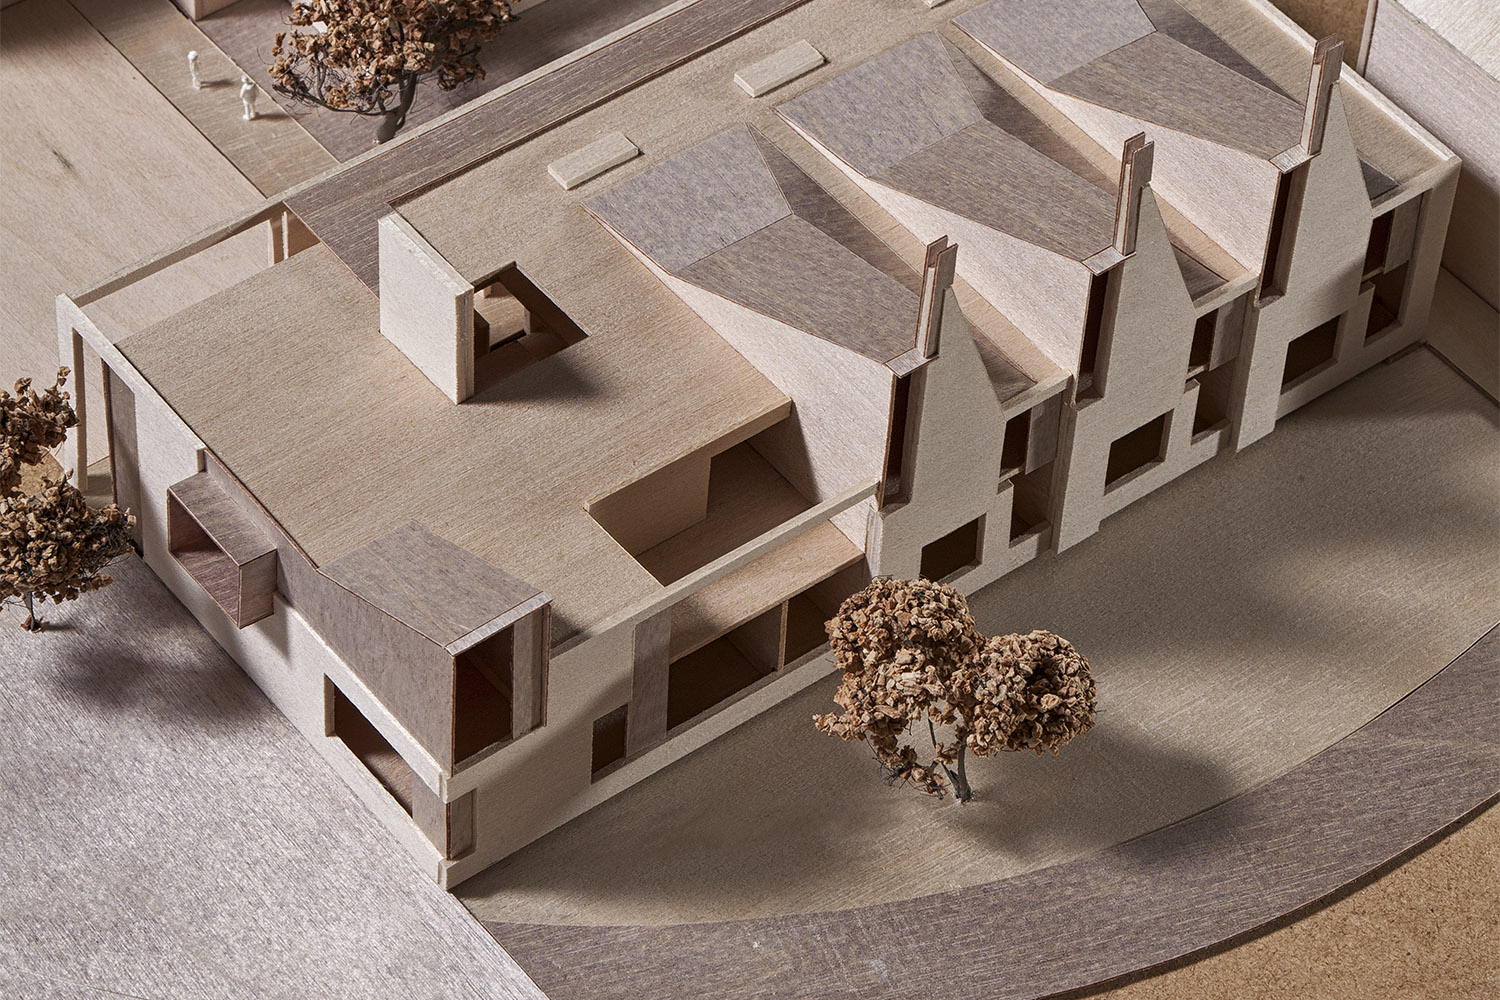 Charterhouse Science Model